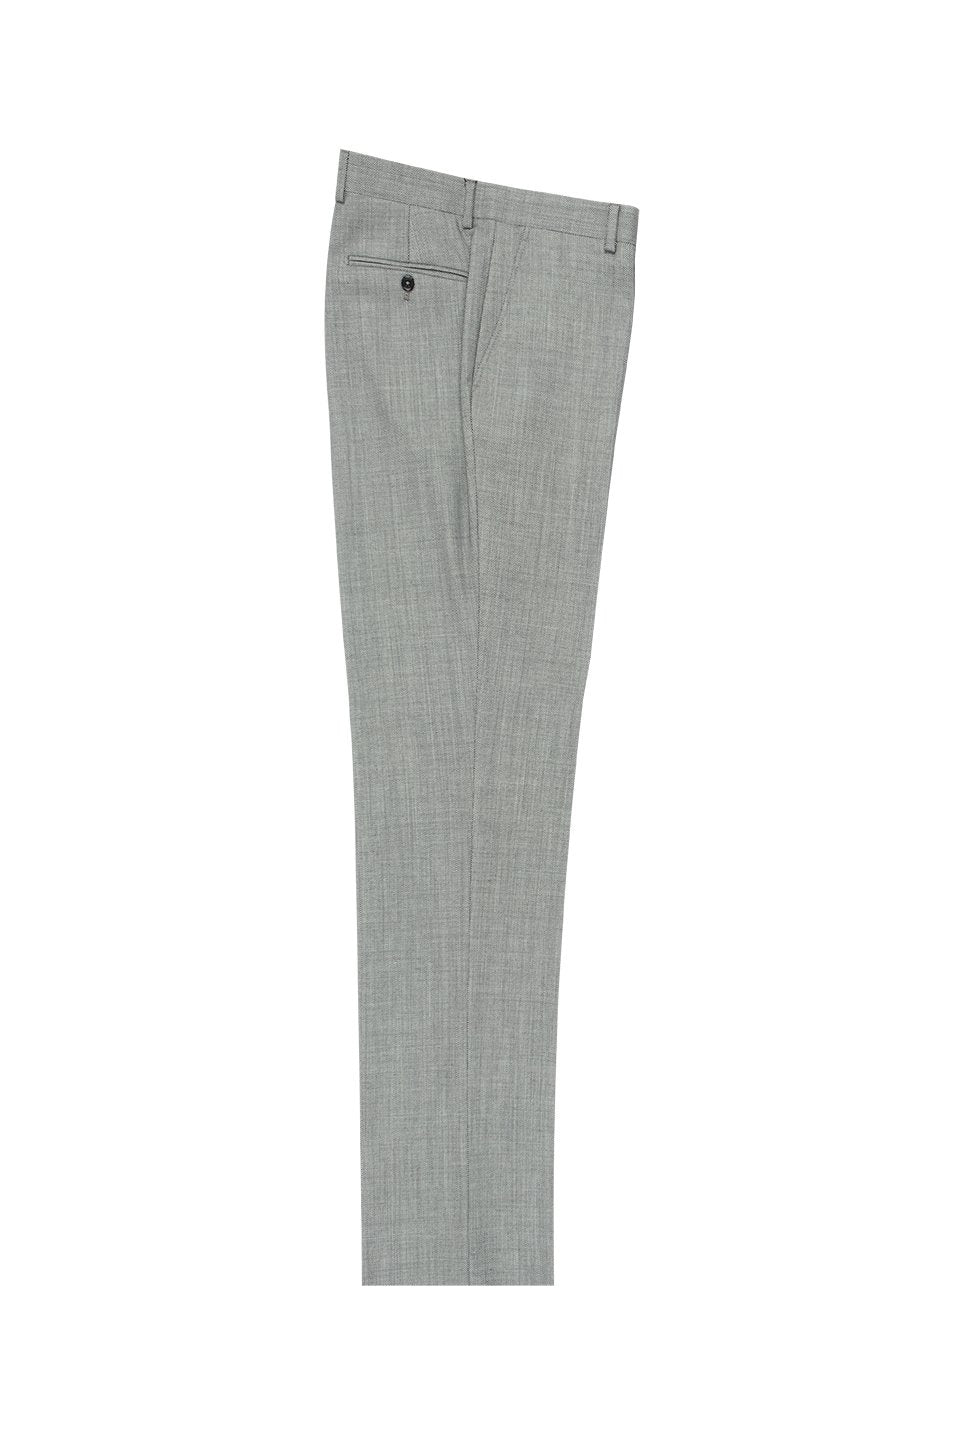 Tiglio Light Grey Birdseye Flat Front Dress Pants